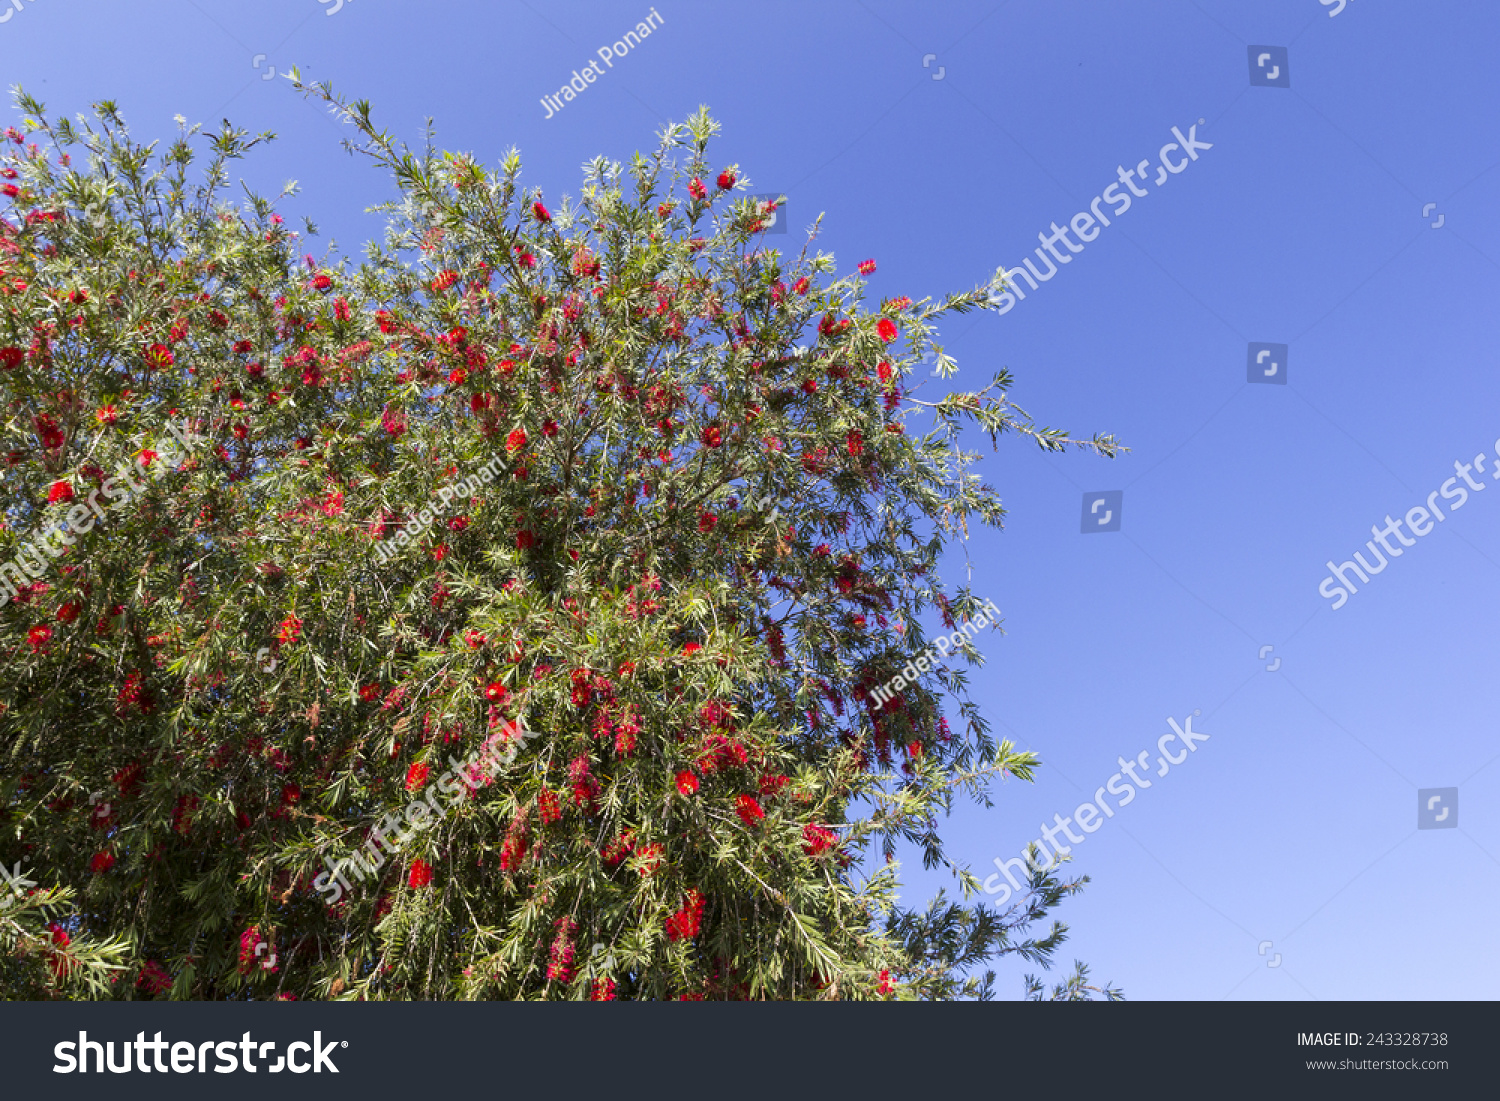 Red flower tree blue sky stock photo edit now 243328738 shutterstock red flower tree with blue sky izmirmasajfo